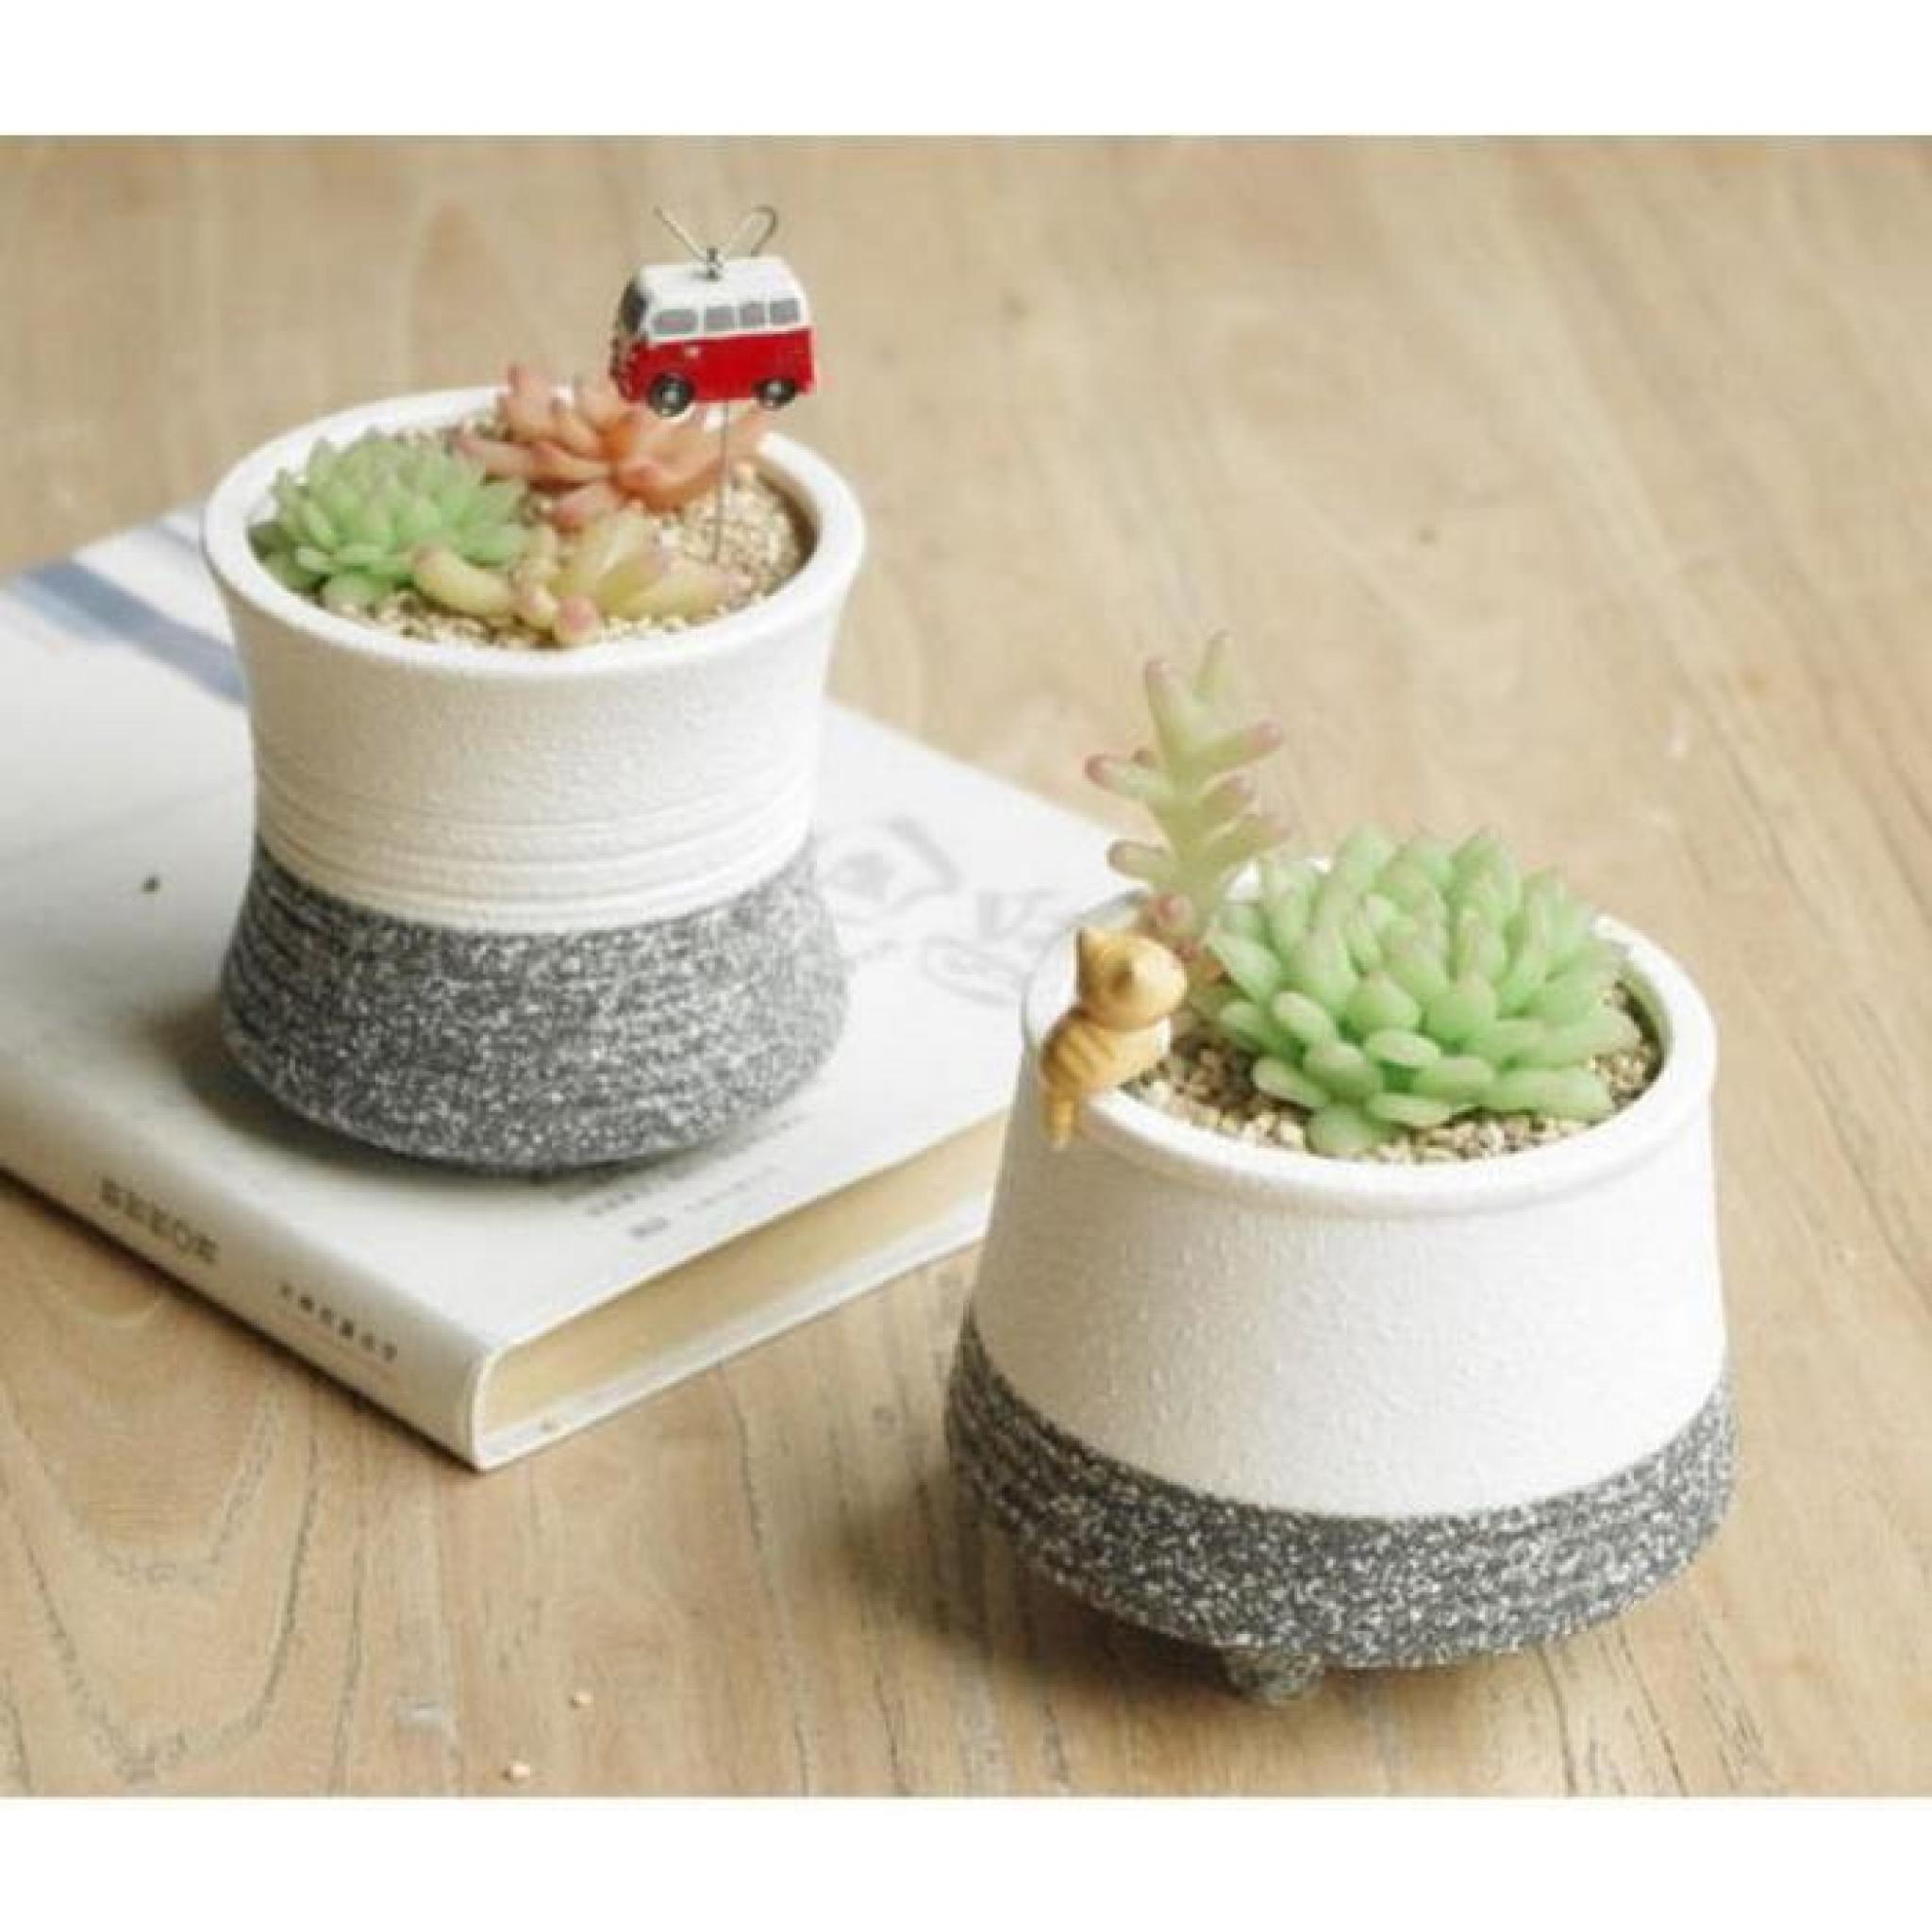 plante succulente pots fleur de neige snow mountain 4 achat vente pot de fleur en resine pas. Black Bedroom Furniture Sets. Home Design Ideas